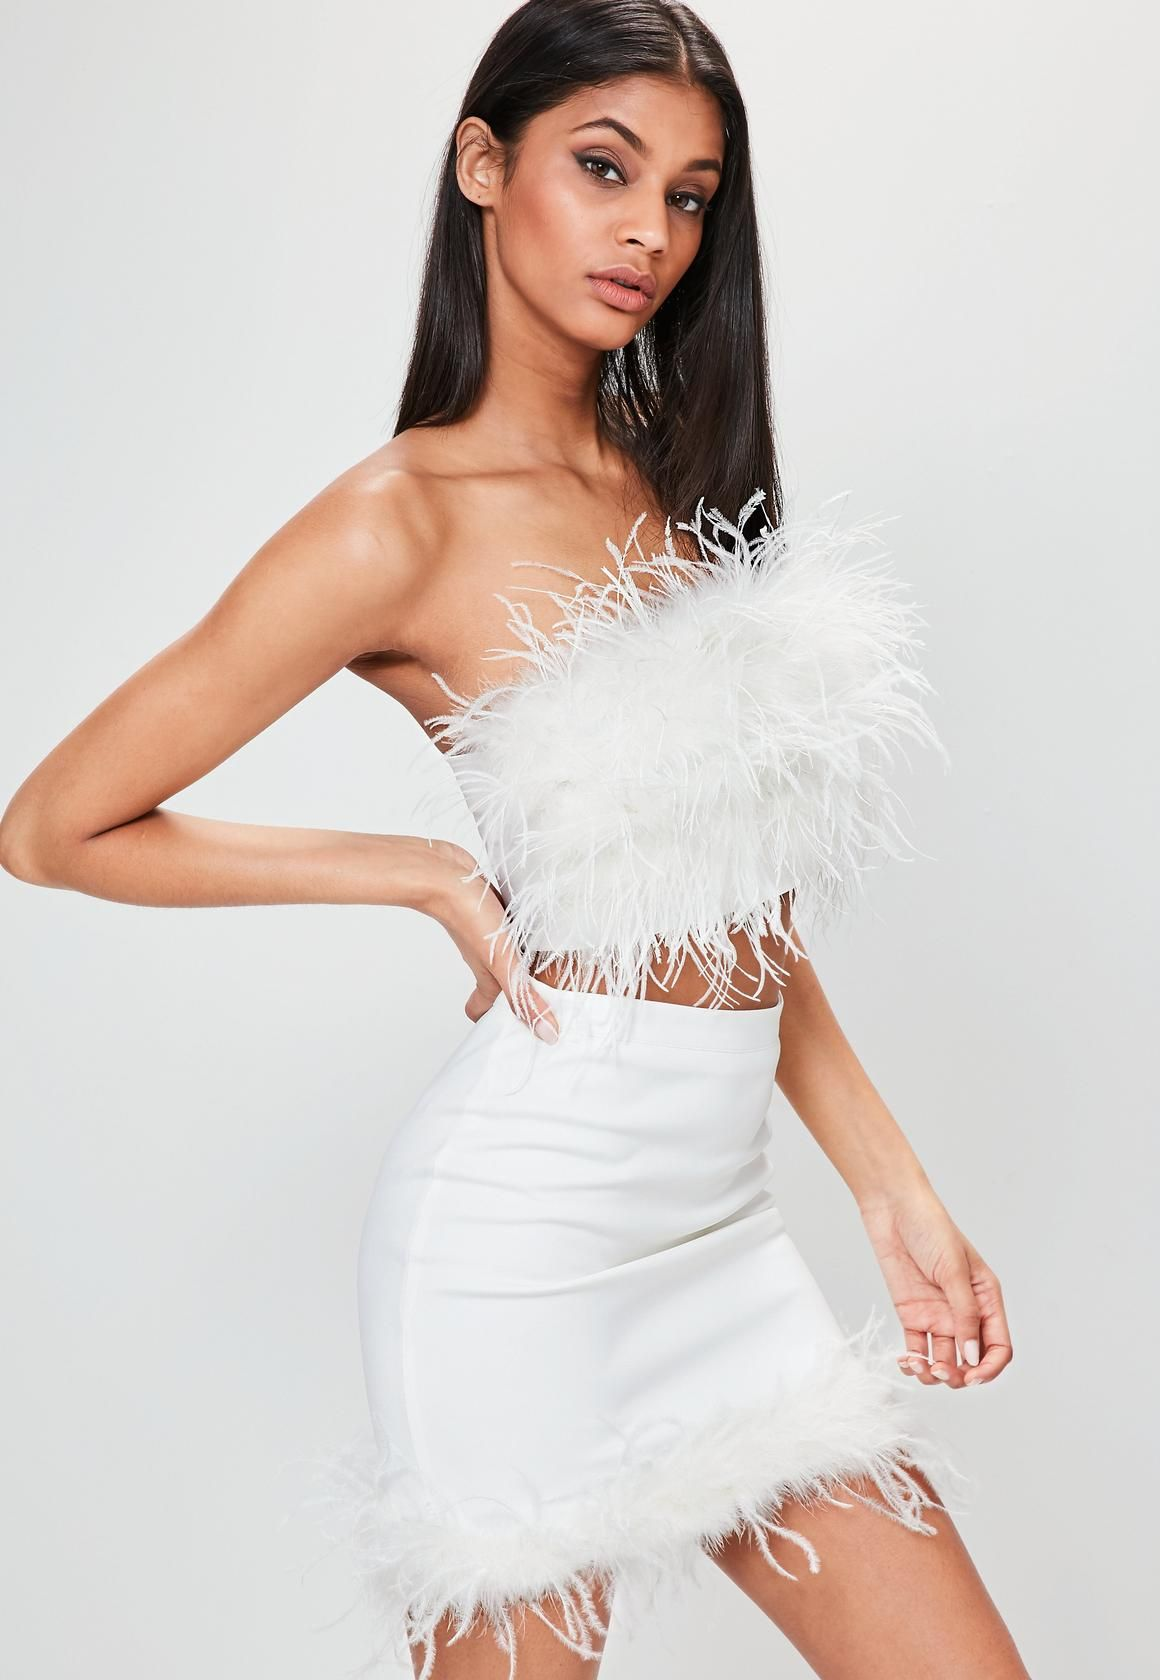 Missguided White Feather Bandeau Top In 2020 Feather Dress Feather Dress Short Feather Fashion